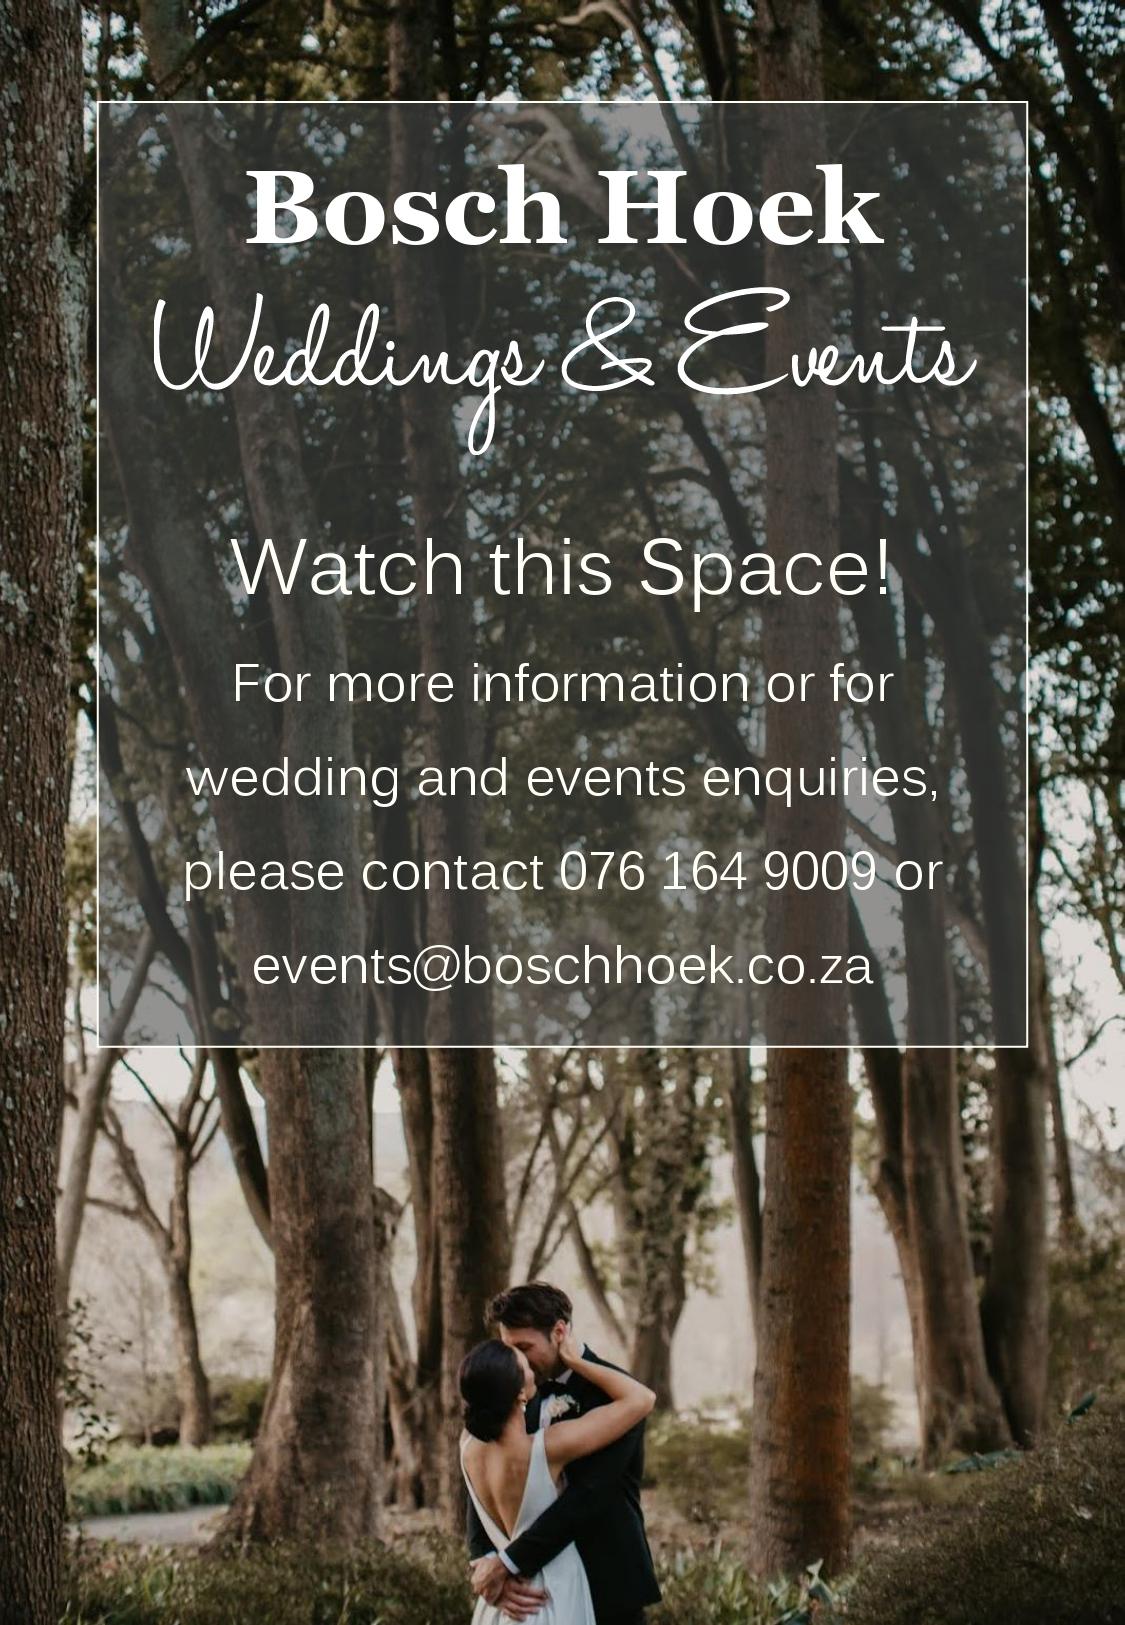 Wedding & Events_page-0001